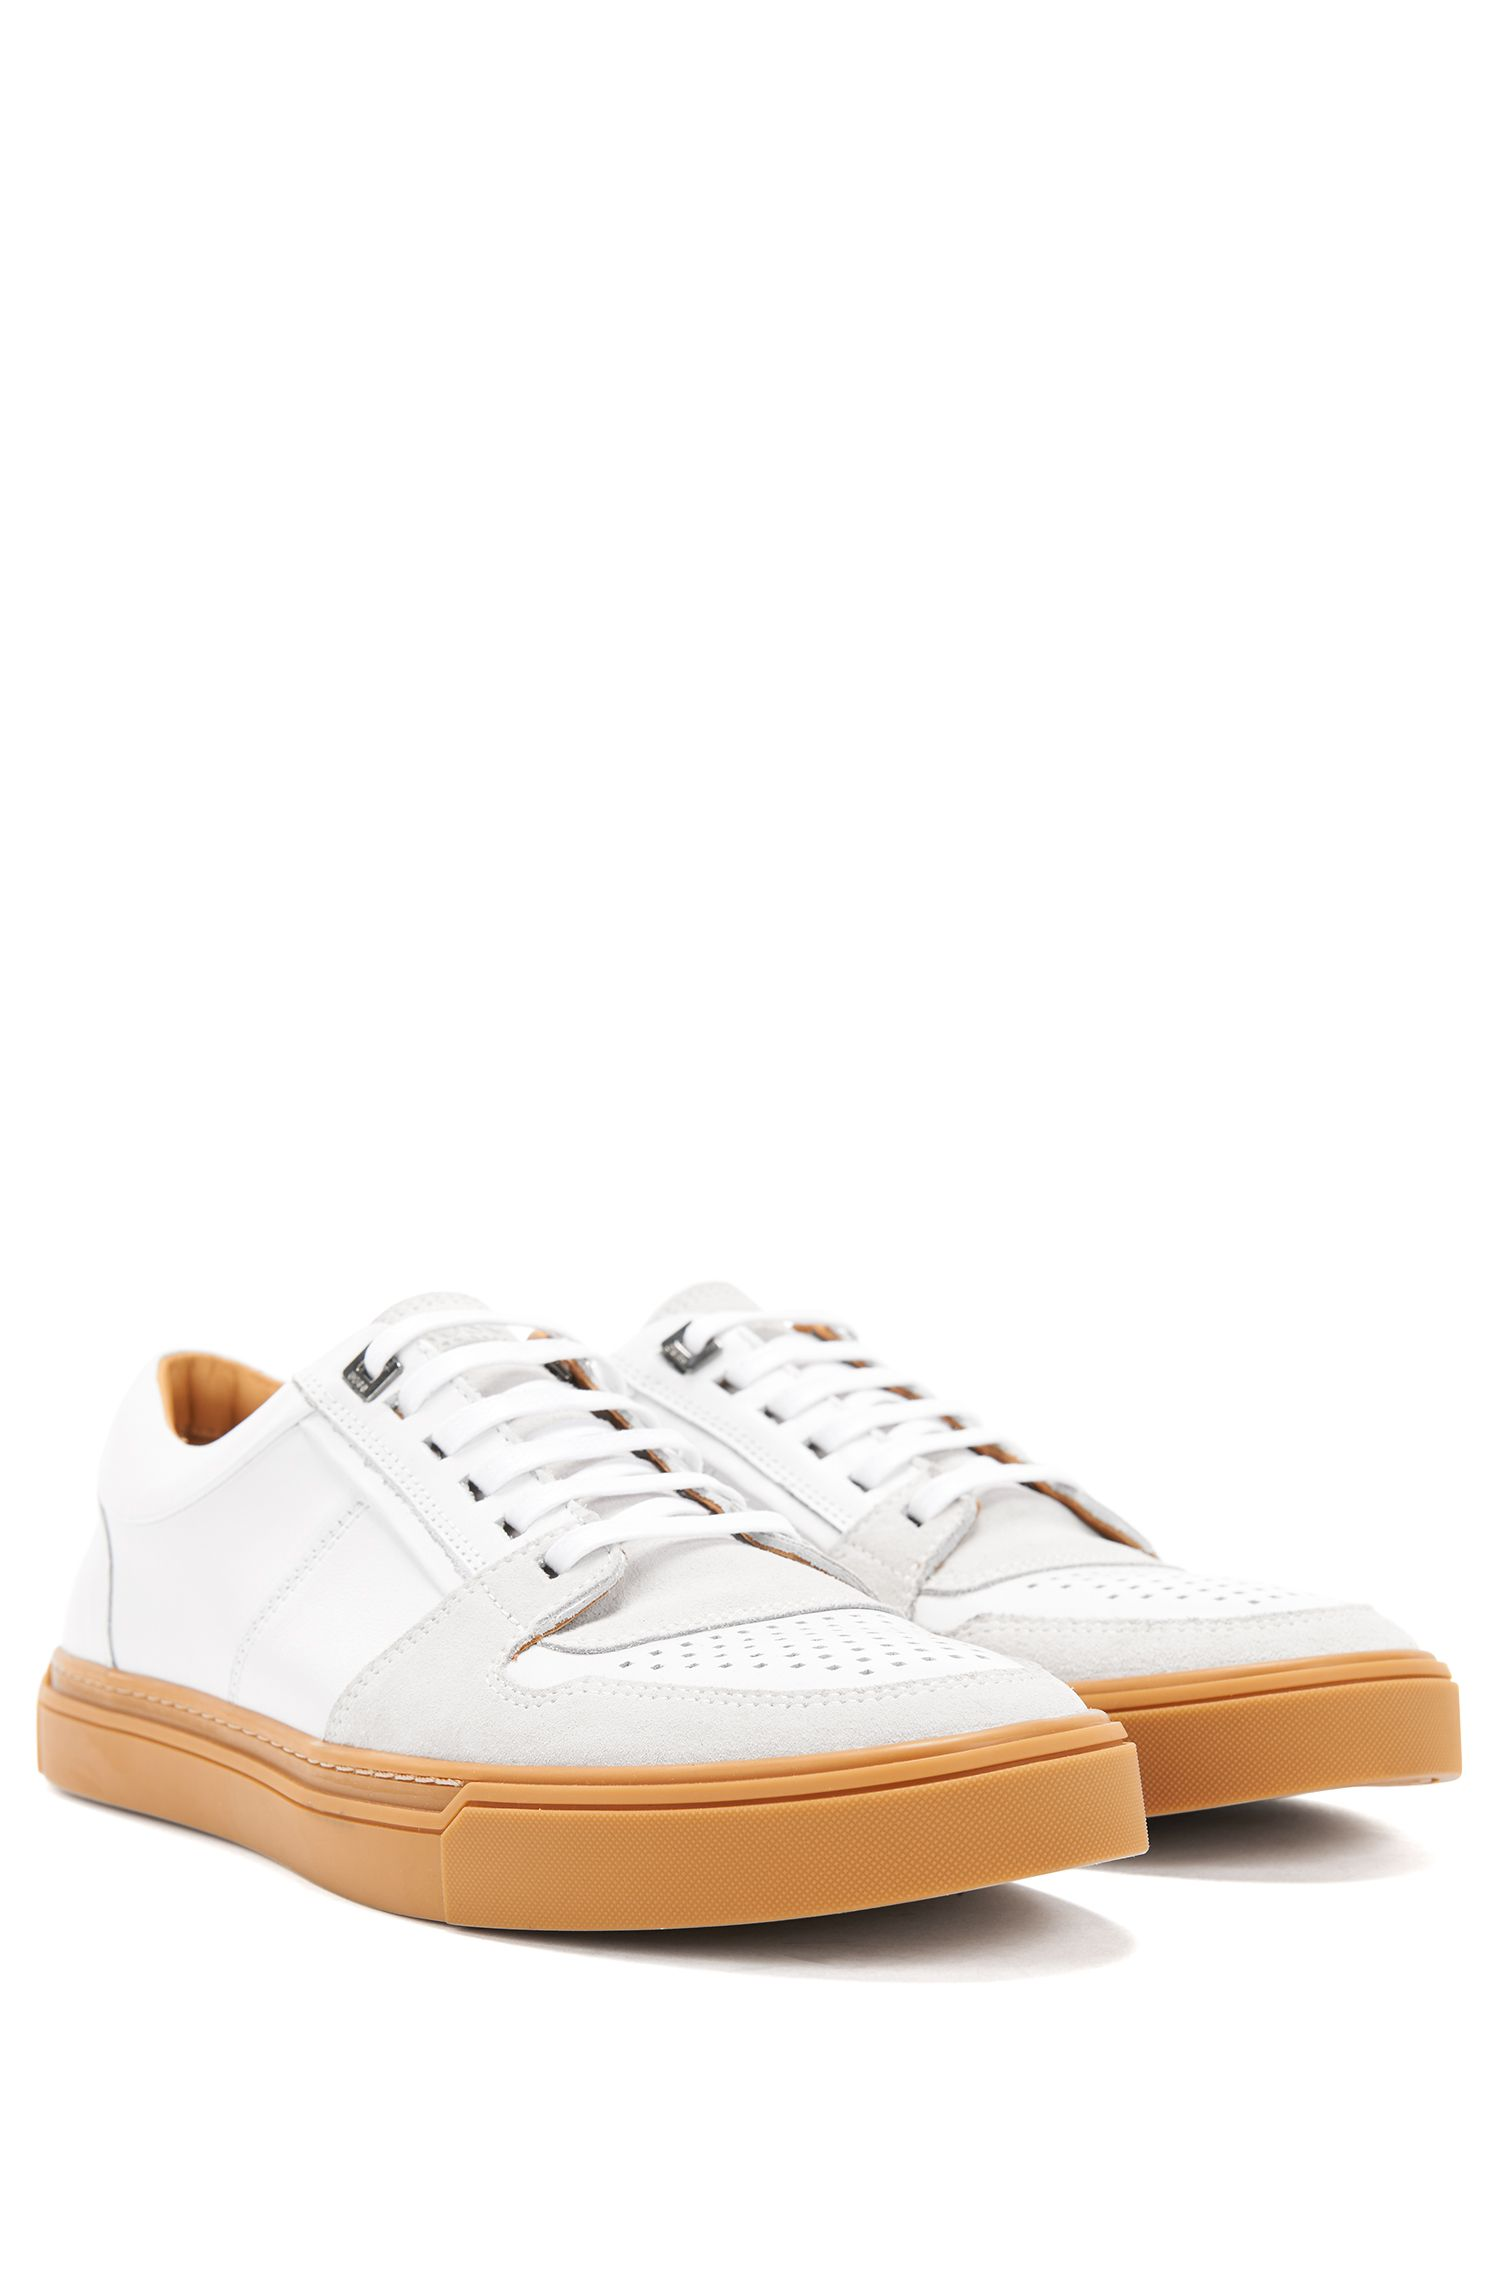 Italian calf-leather trainers with Strobel construction